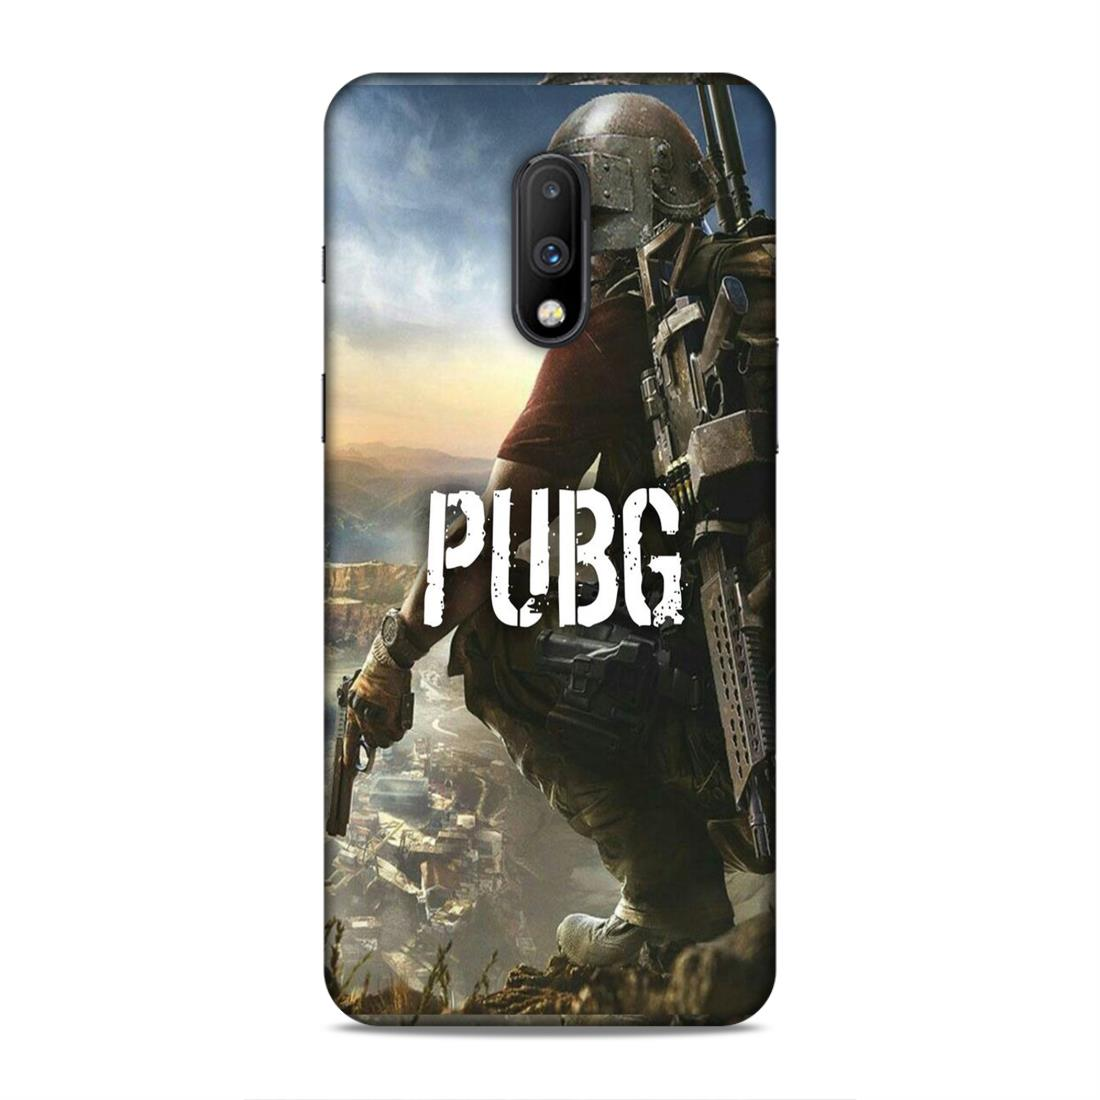 Phone Cases,Oneplus Phone Cases,Oneplus 7,Gaming